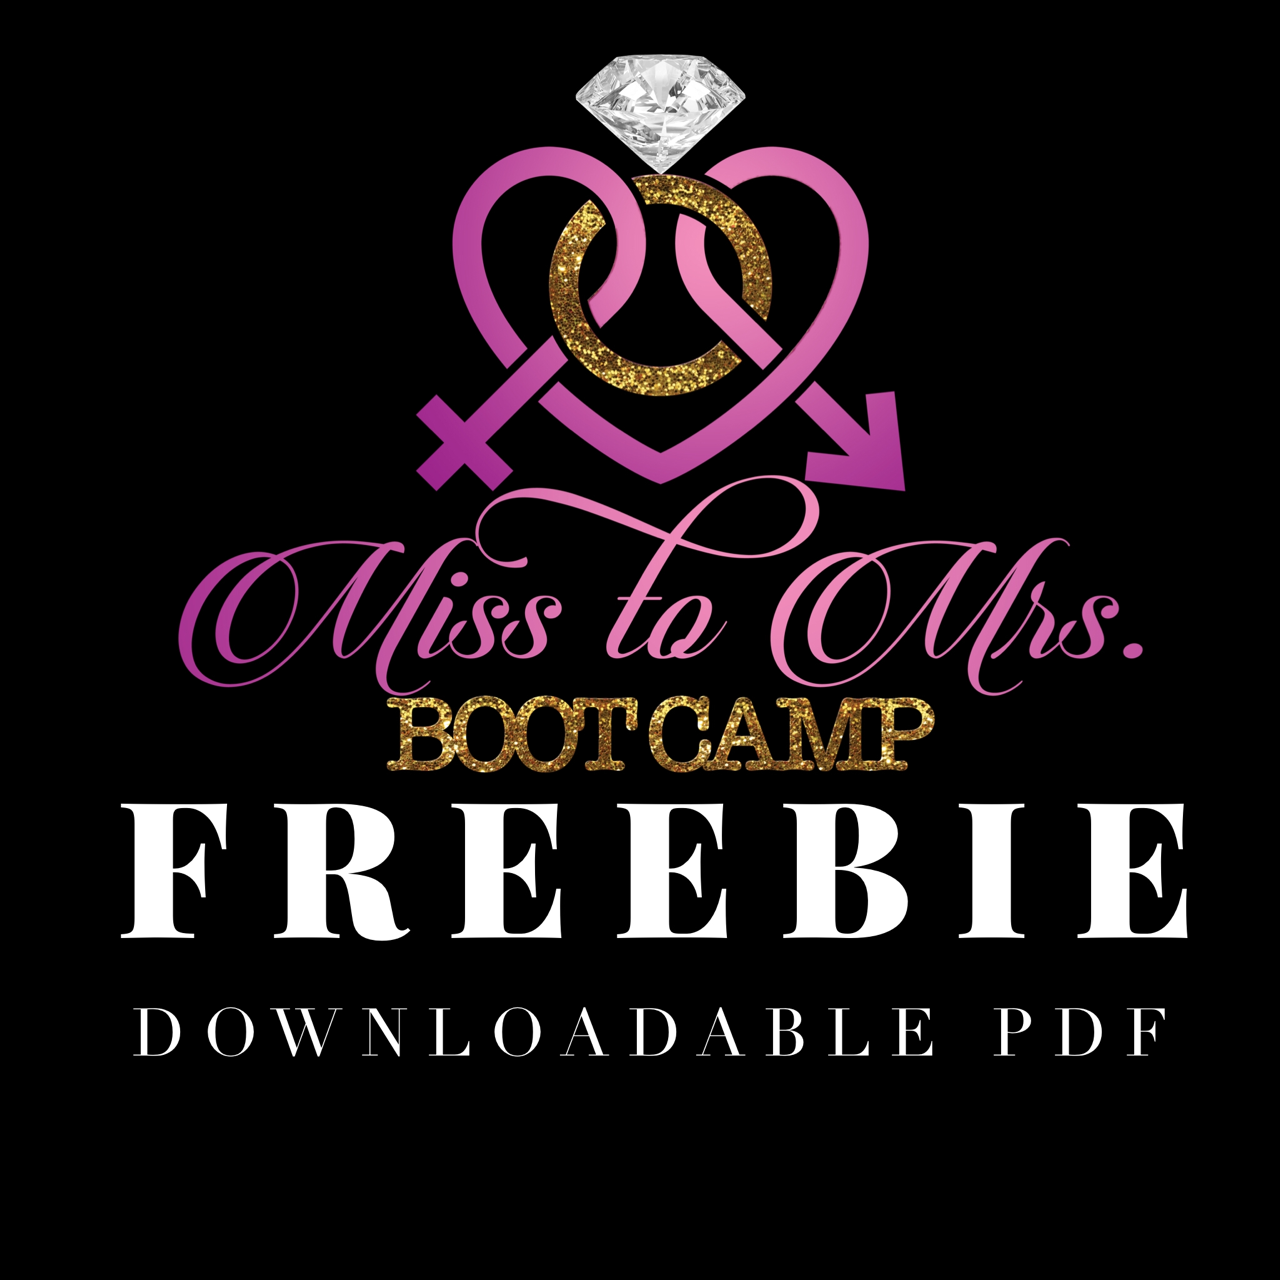 Miss to Mrs. Boot Camp Freebie PDF Study Guide (Healthy Couples Categories)